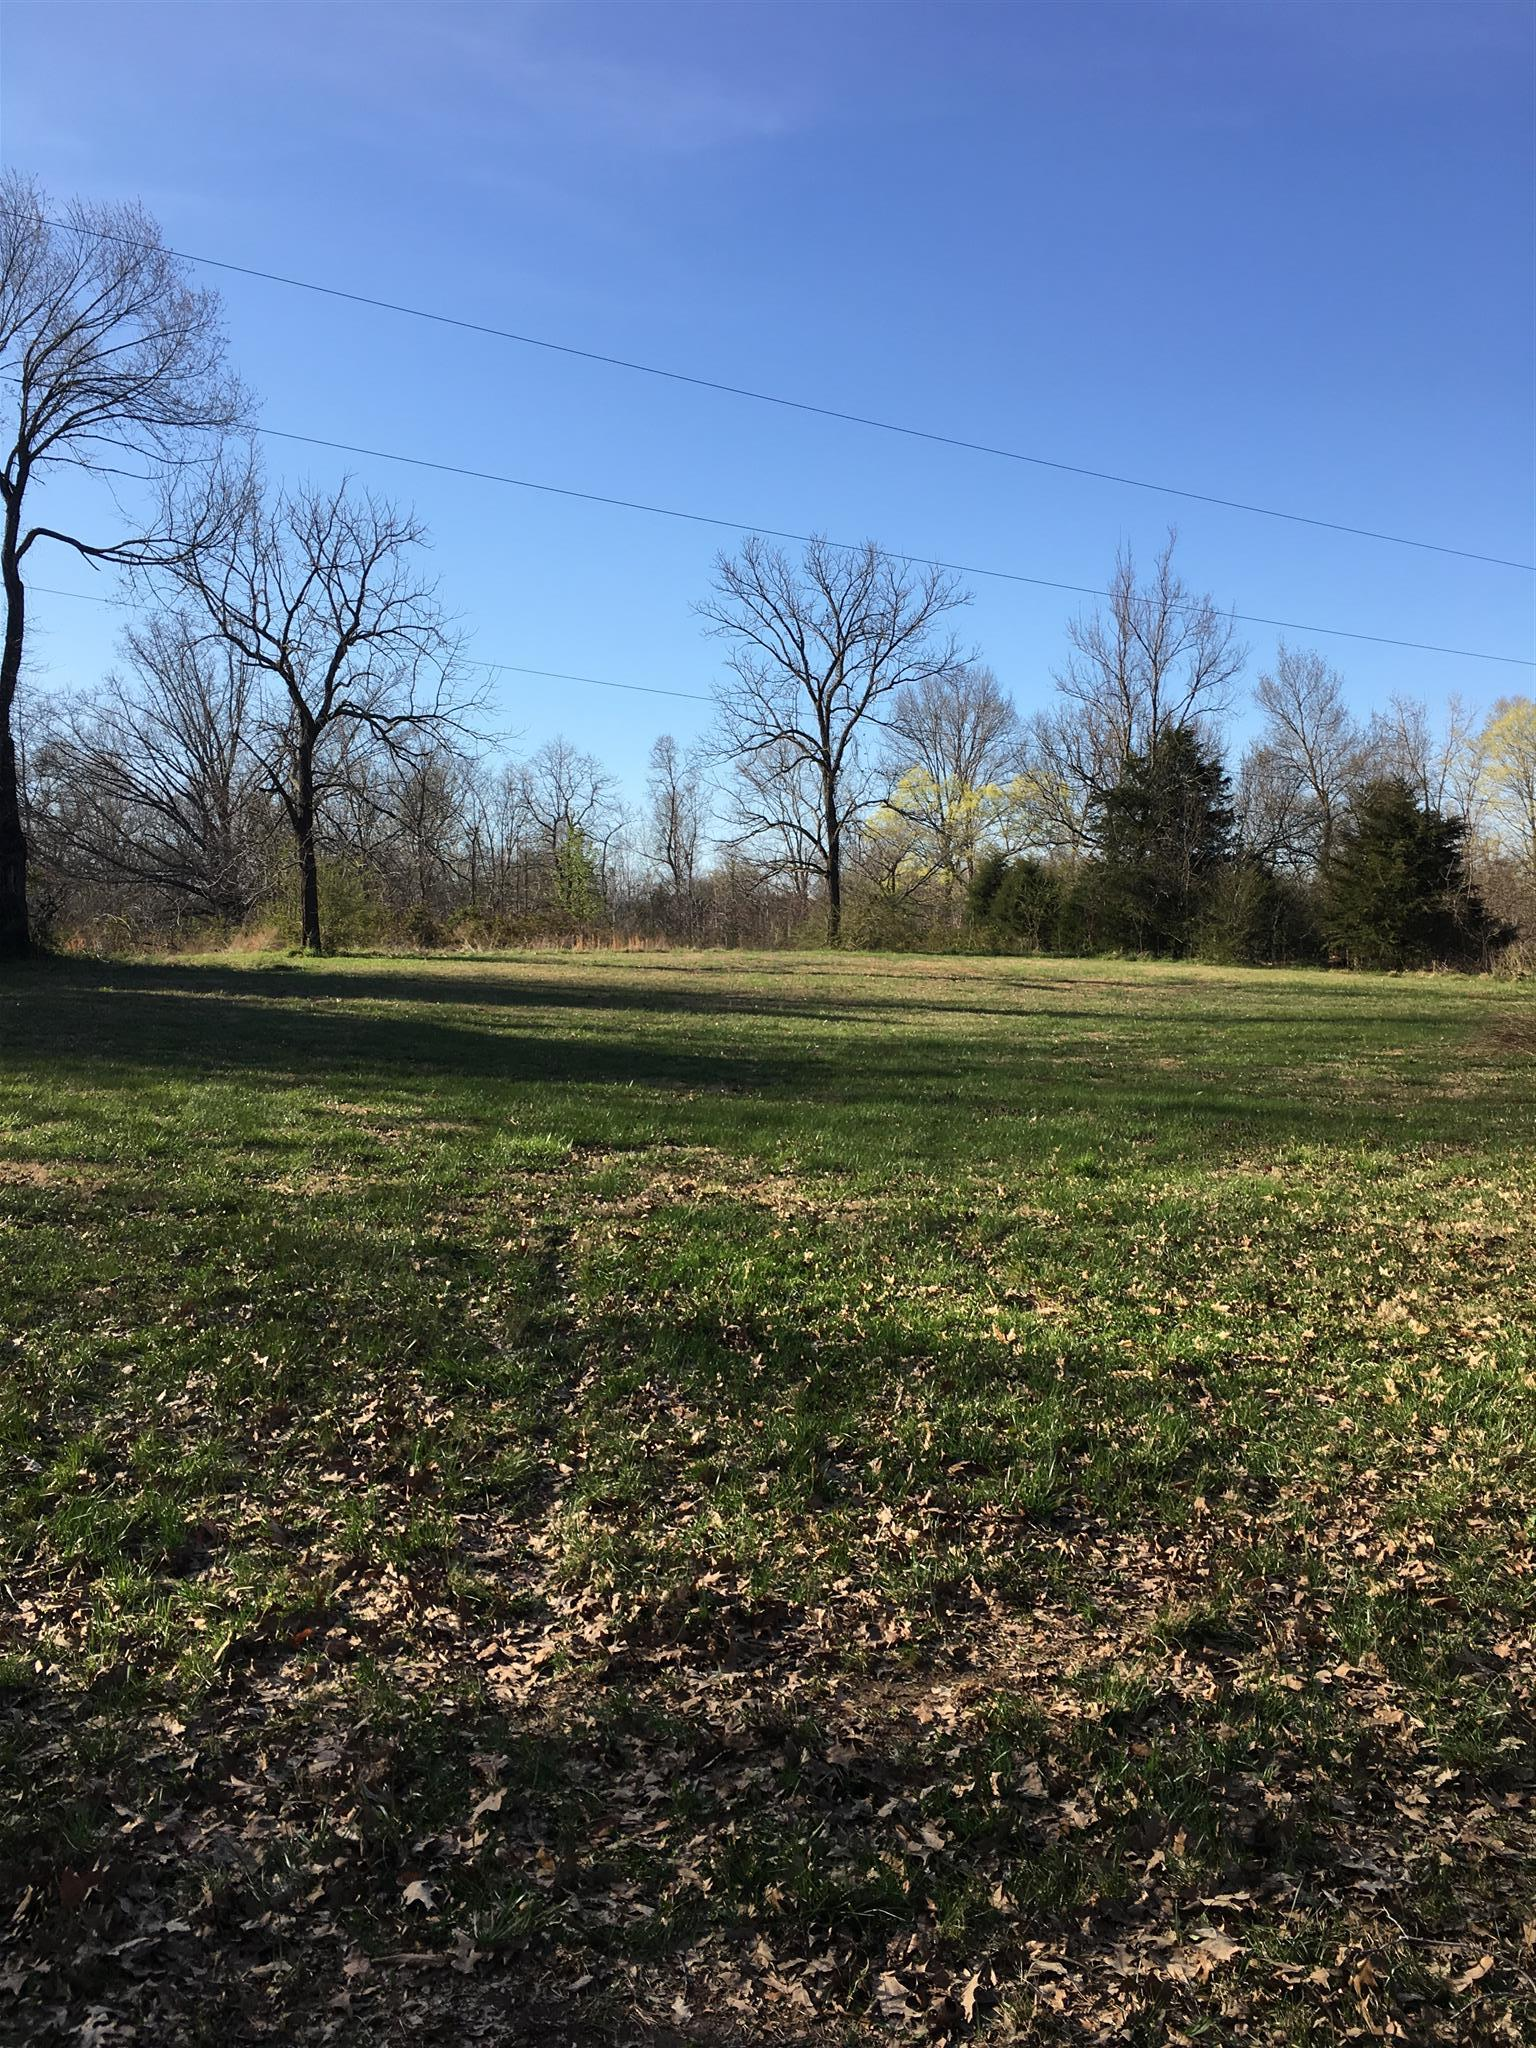 0 Downs Rd, Cumberland City, TN 37050 - Cumberland City, TN real estate listing